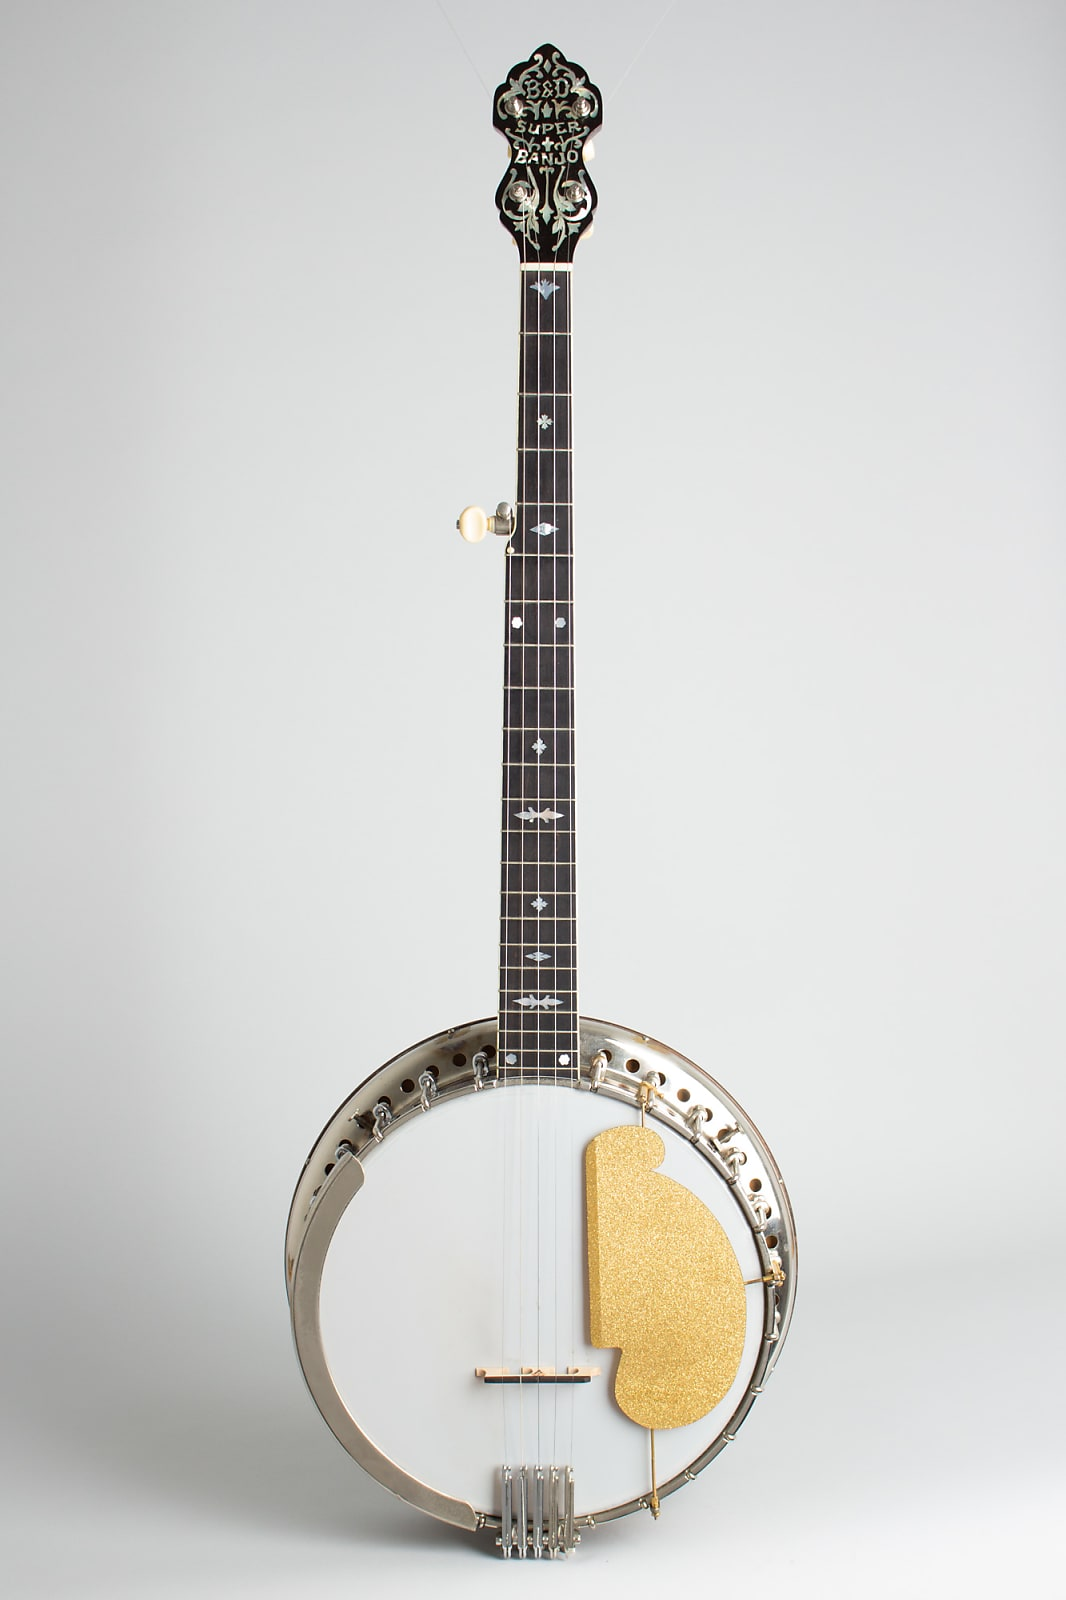 Bacon & Day  Super Style A Conversion 5 String Banjo (1923), ser. #10354, black hard shell case.